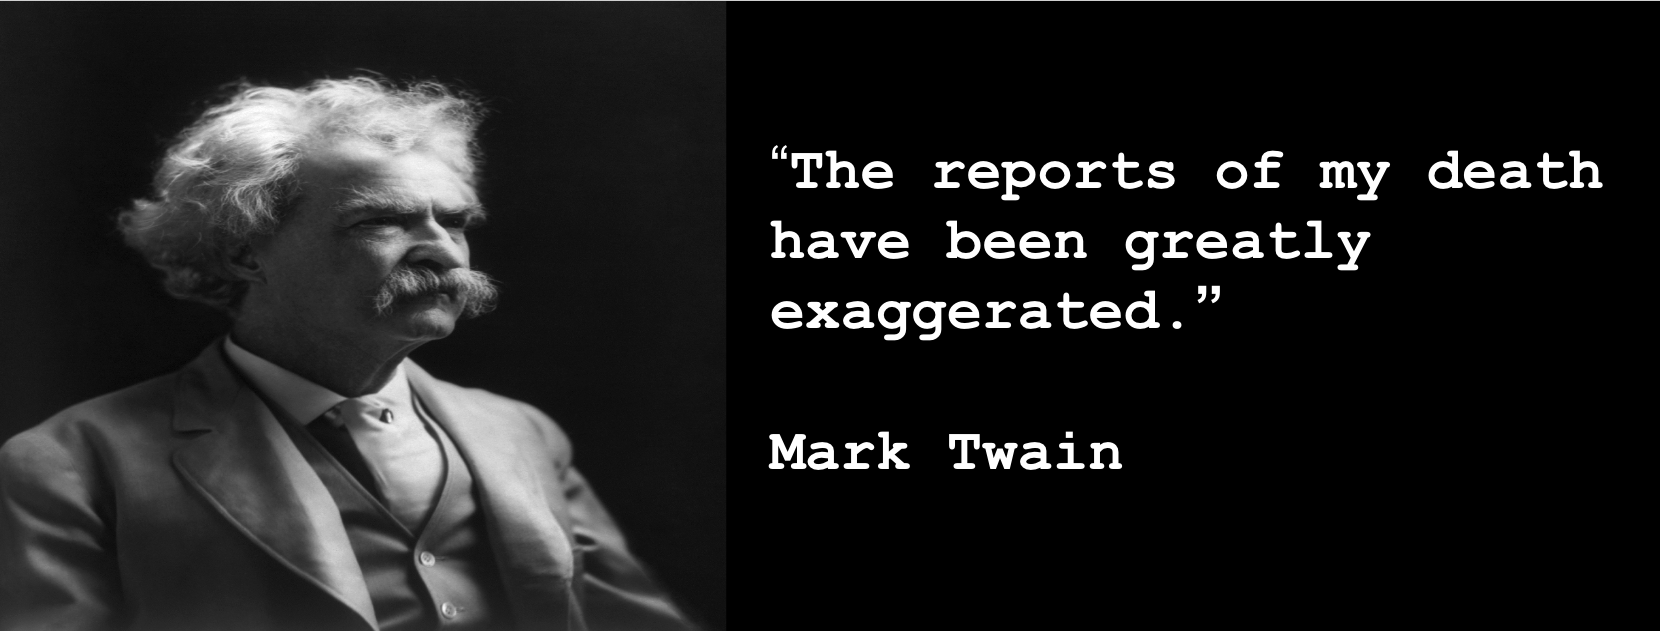 "Picture of Mark Twain with the quotation: ""The reports of my death have been greatly exaggerated."""